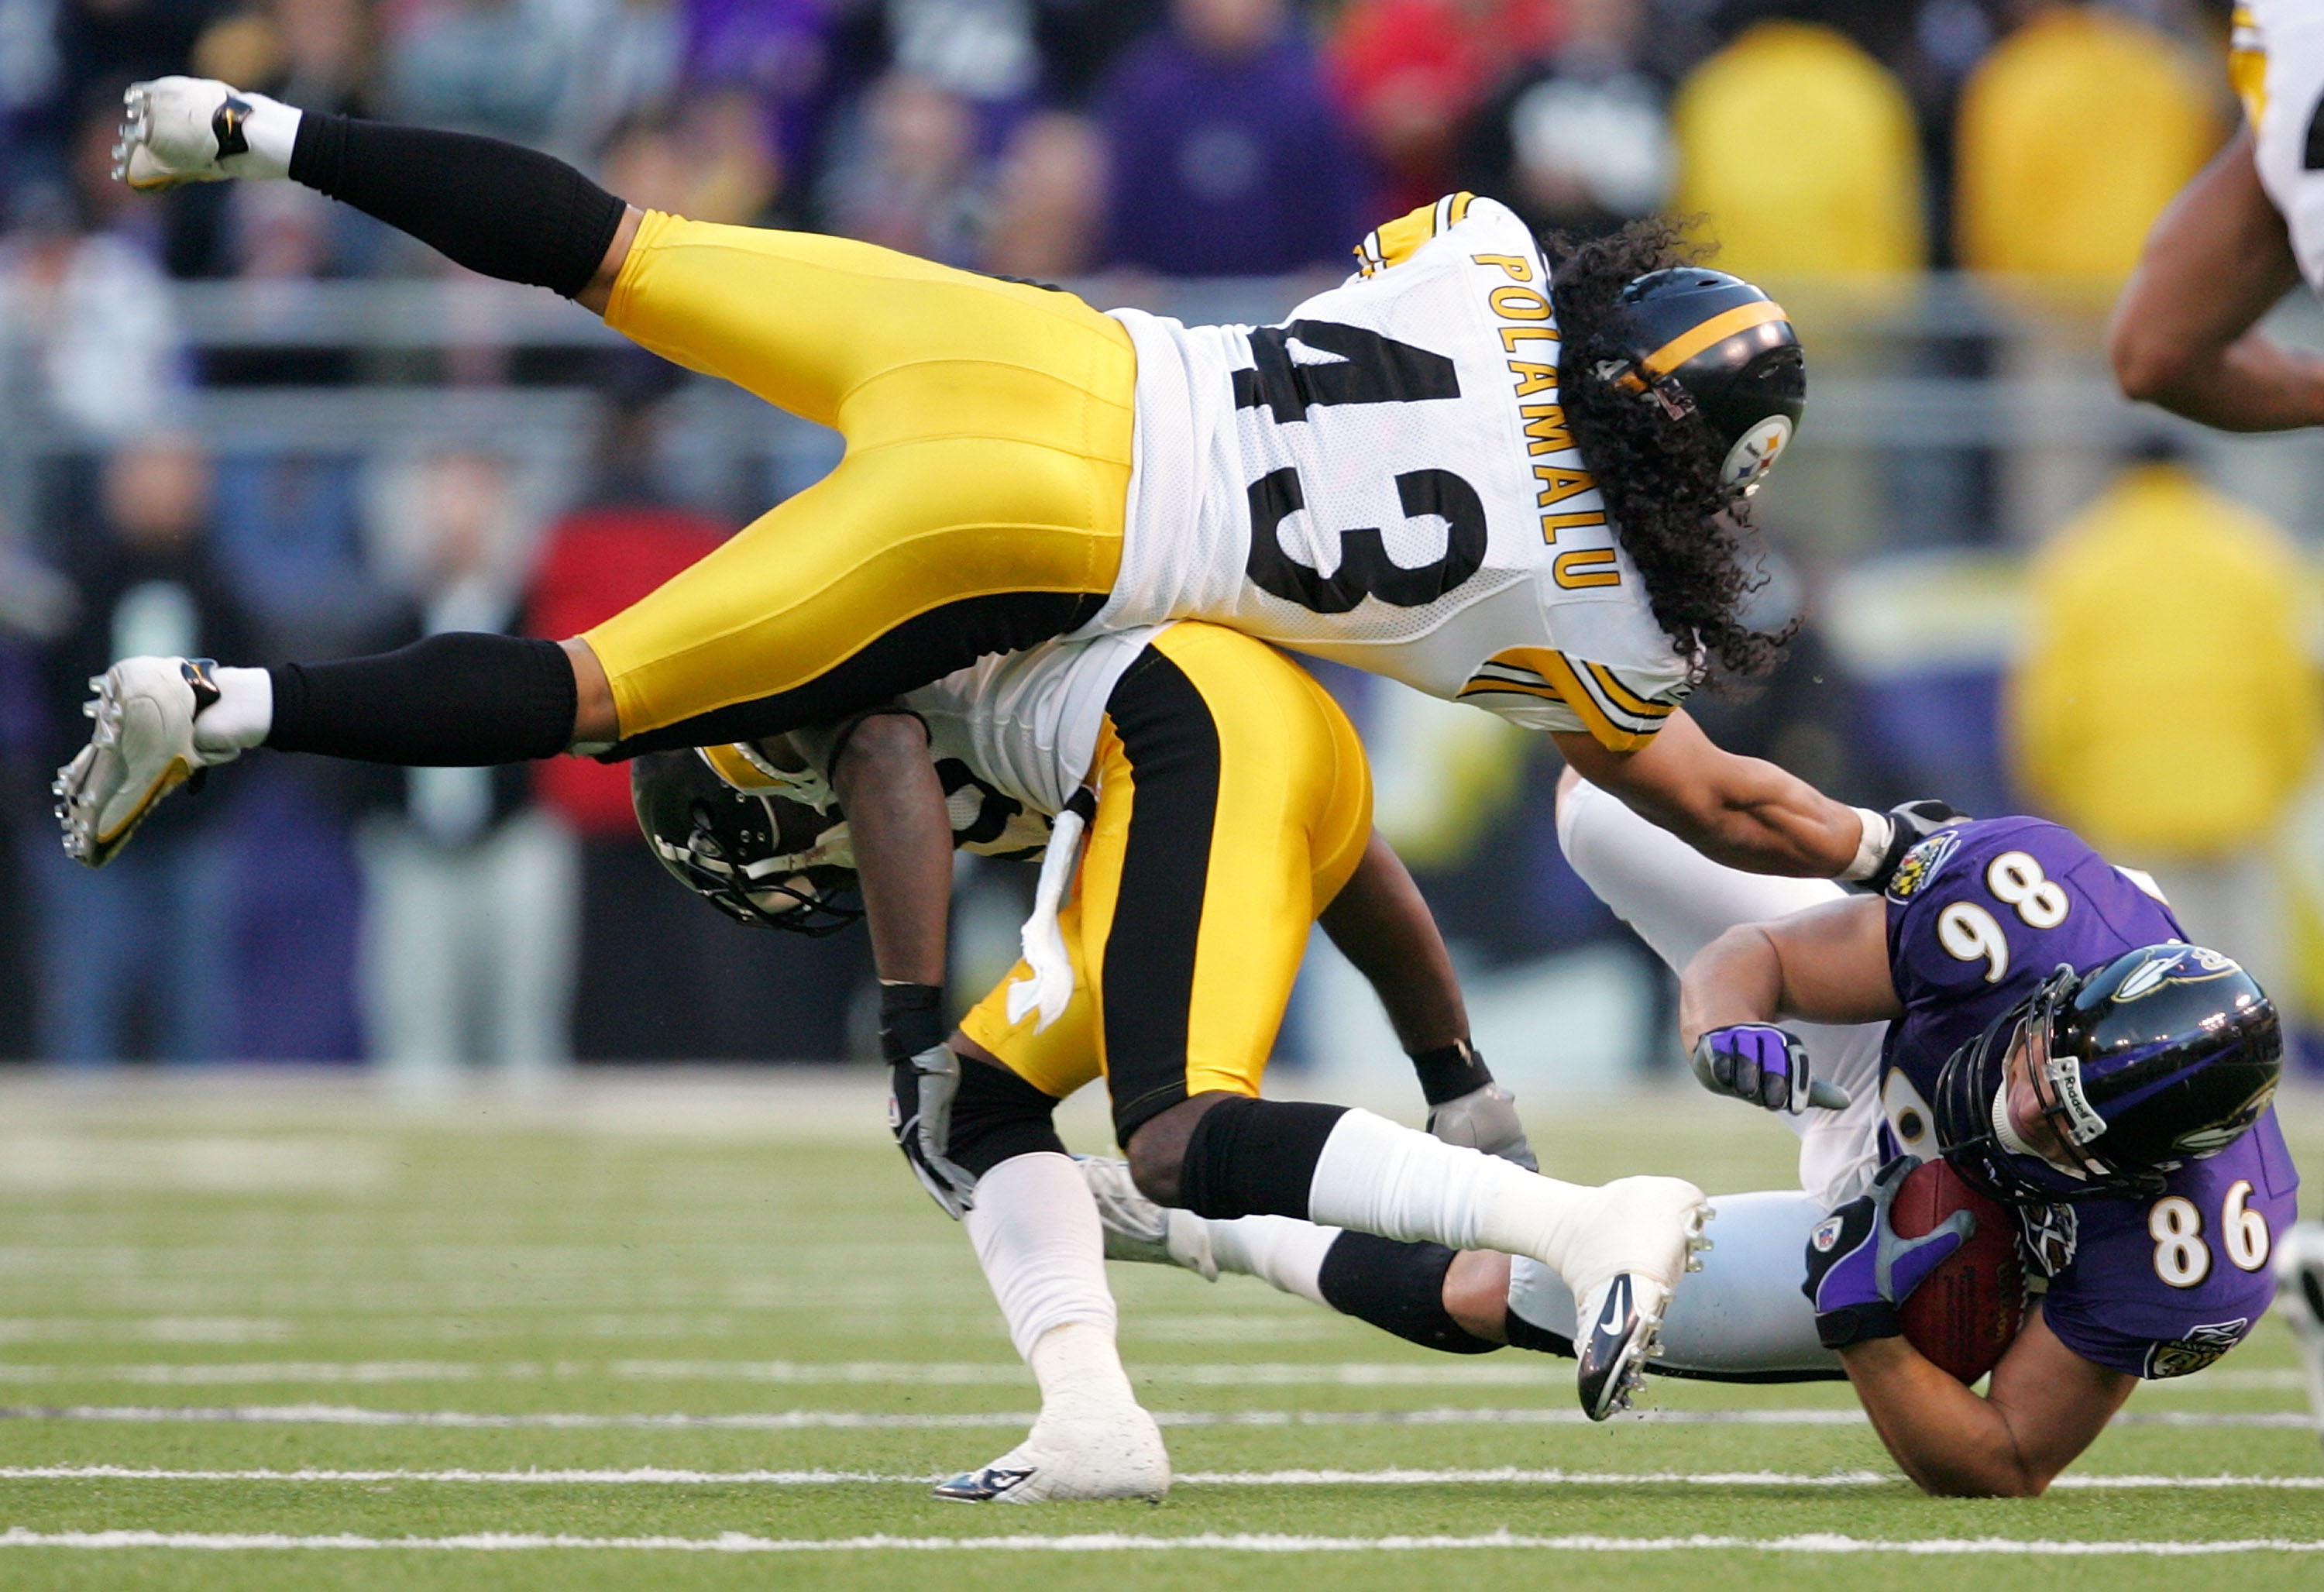 BALTIMORE - NOVEMBER 20:  Troy Polamalu #43 of the Pittsburgh Steelers leaps over the back of teammate Bryant McFadden #20 as he tries to tackle Todd Heap #86 of the Baltimore Ravens during the second half of the game on November 20, 2005 at M&T Bank Stad